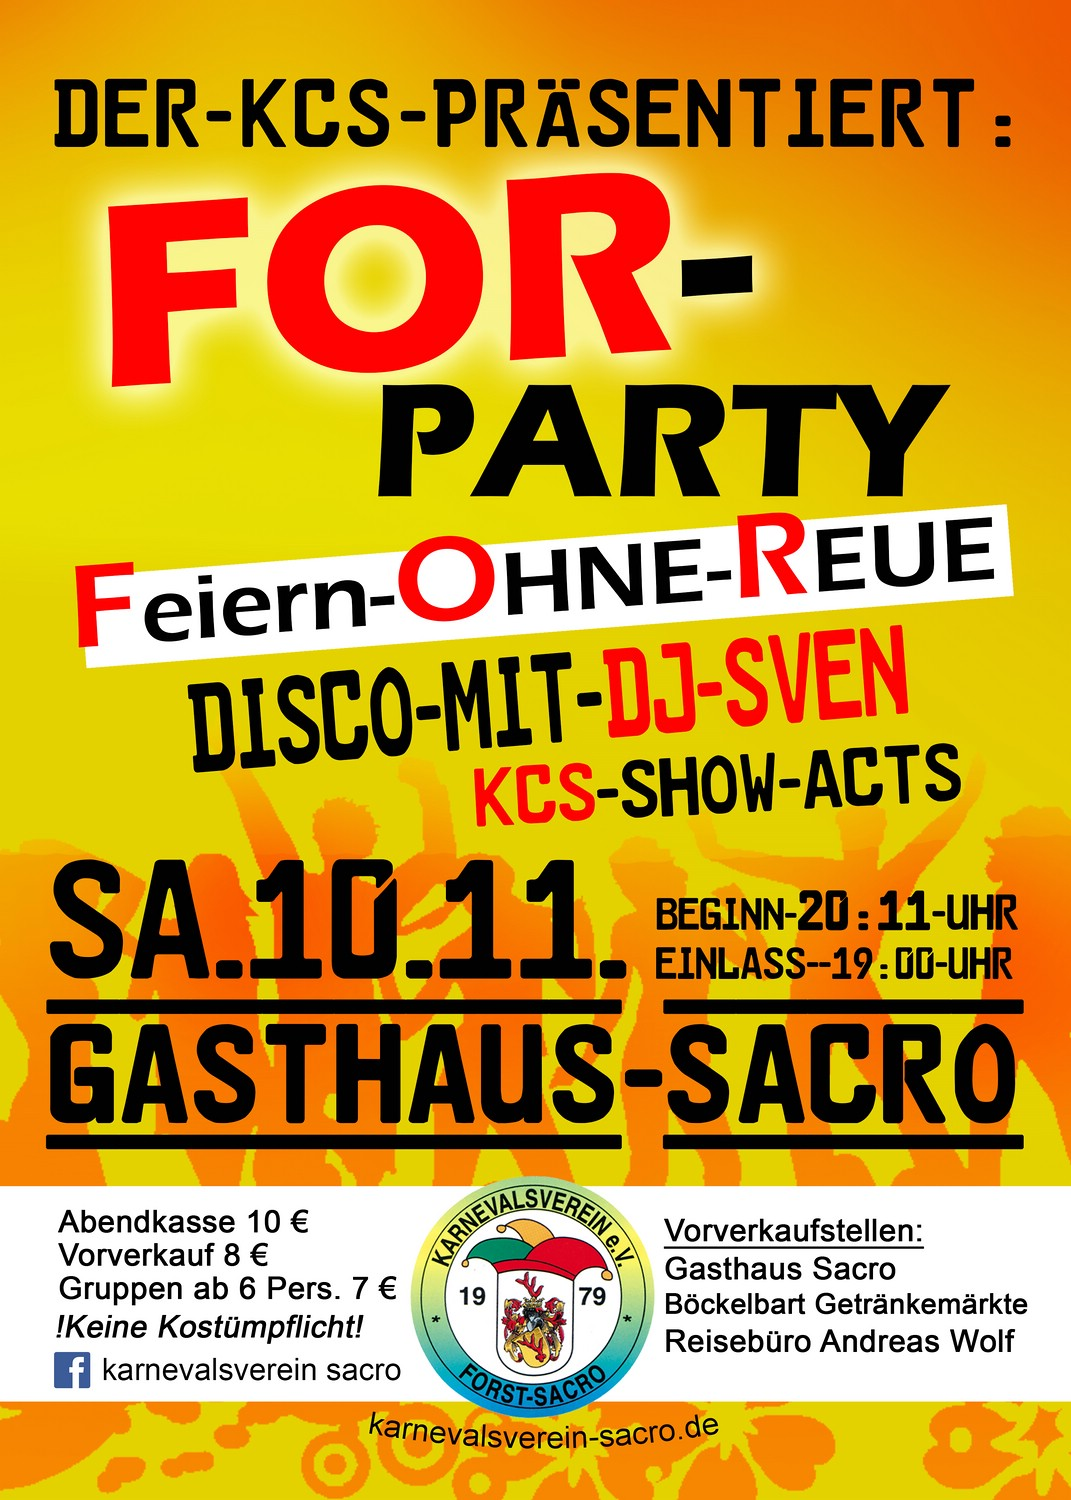 FOR Party 1 entwurf 6 Final-1500